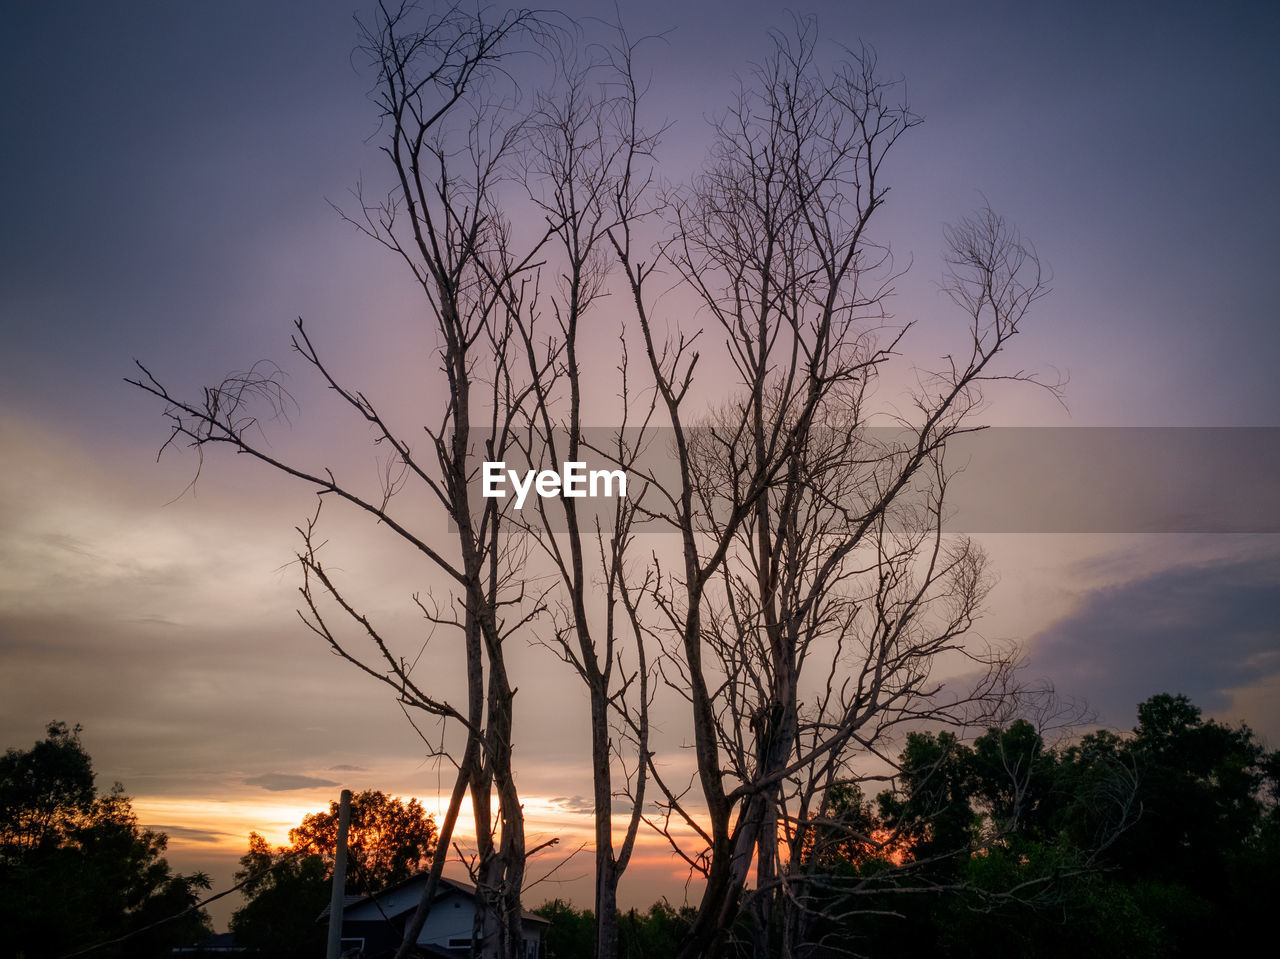 sky, tree, sunset, plant, scenics - nature, silhouette, beauty in nature, tranquil scene, cloud - sky, tranquility, bare tree, no people, orange color, nature, non-urban scene, idyllic, branch, outdoors, dusk, land